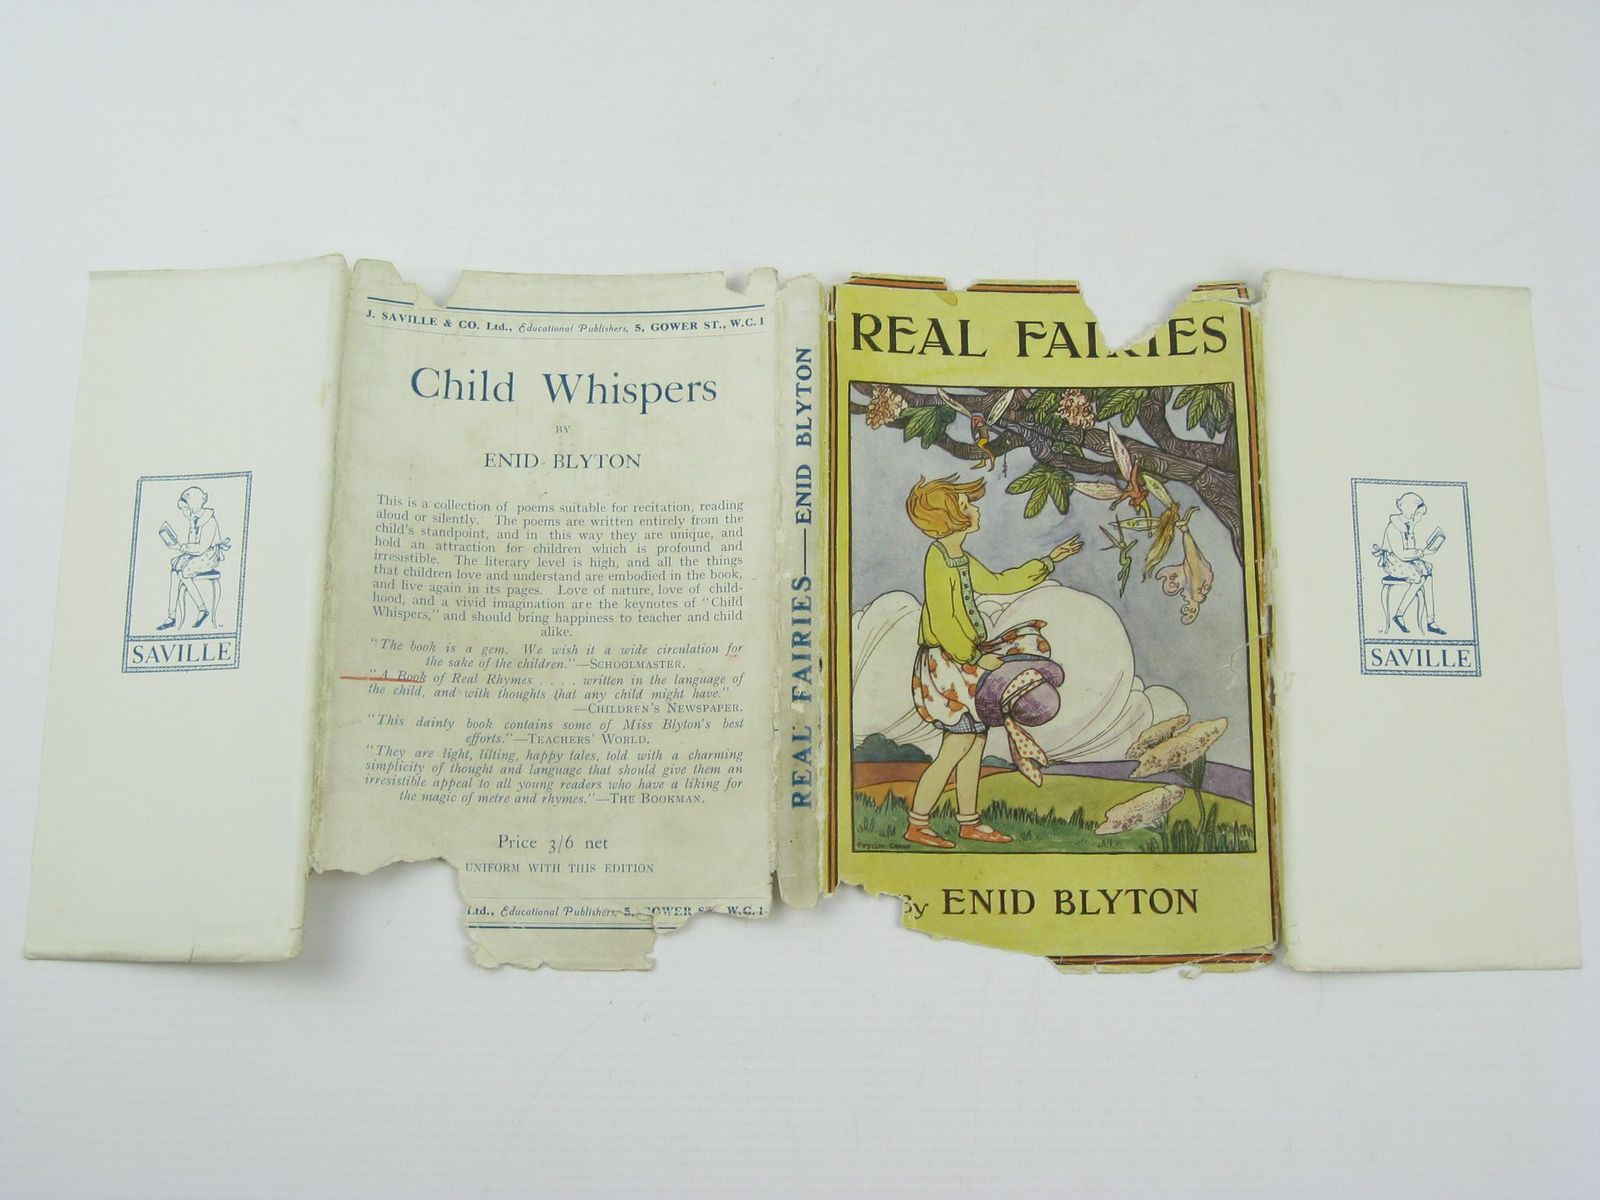 Photo of REAL FAIRIES written by Blyton, Enid published by J. Saville & Co. Ltd. (STOCK CODE: 1311026)  for sale by Stella & Rose's Books